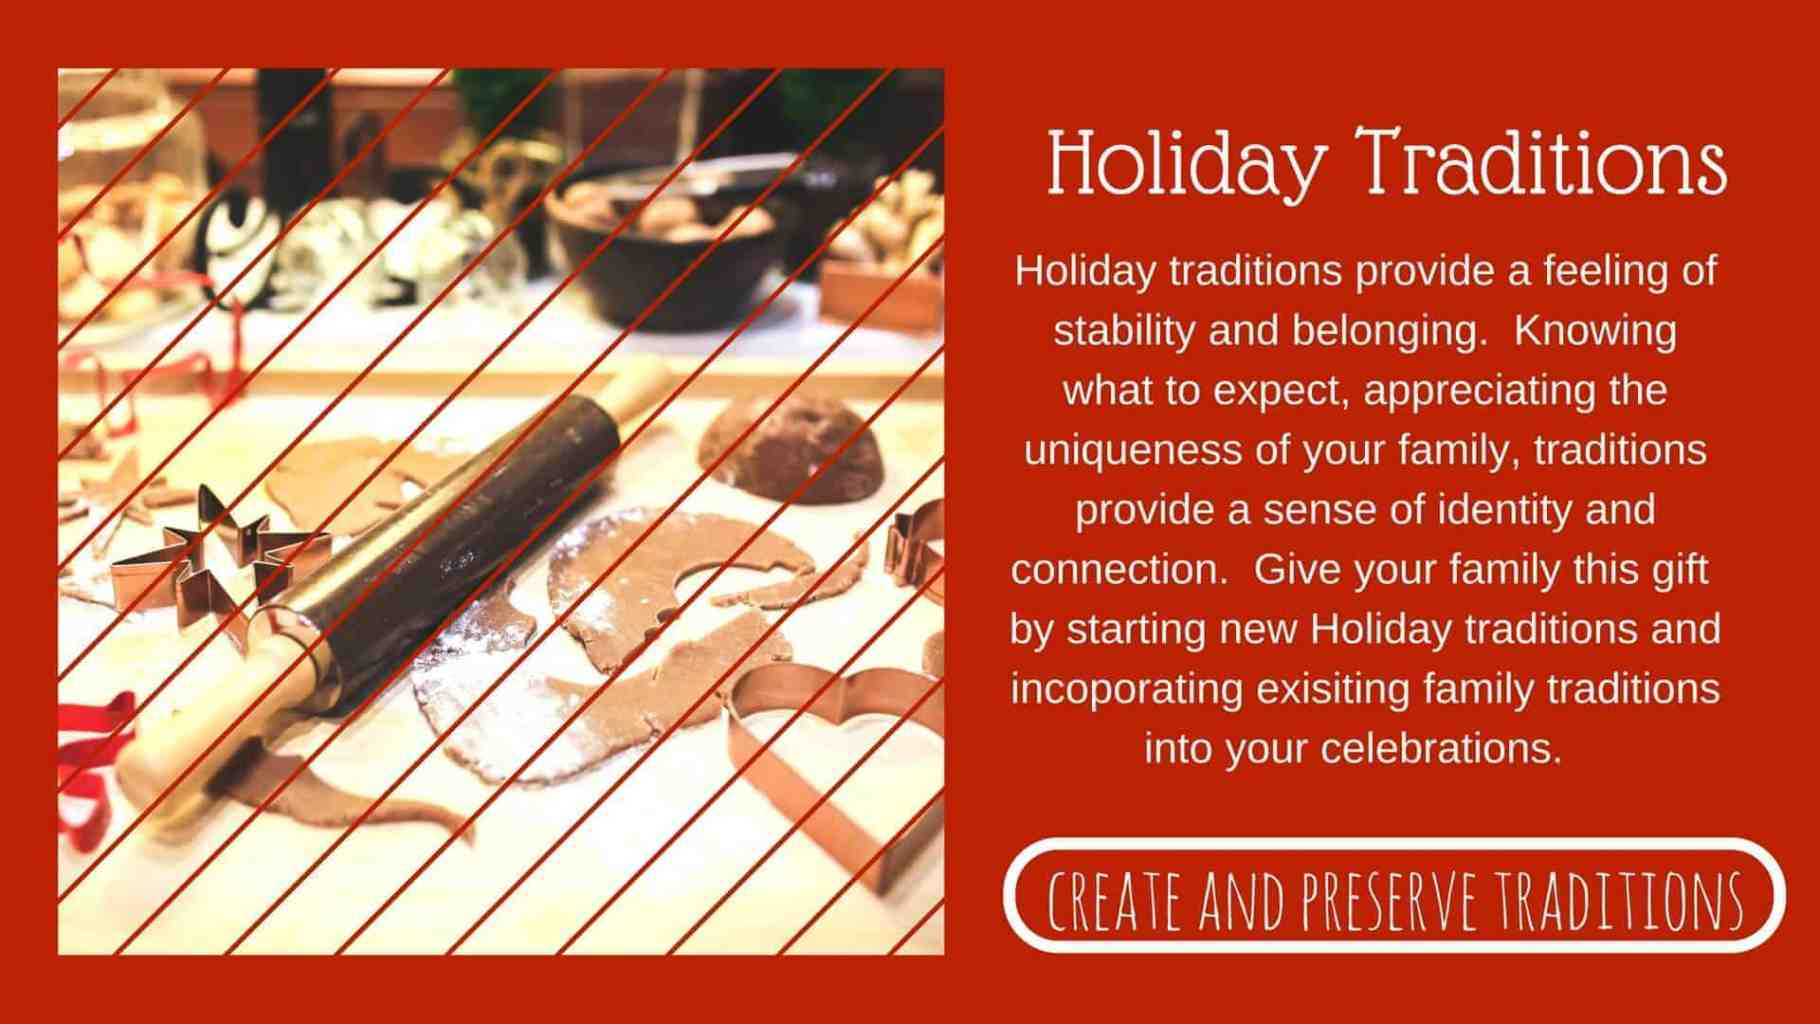 Create and preserve family and holiday traditions